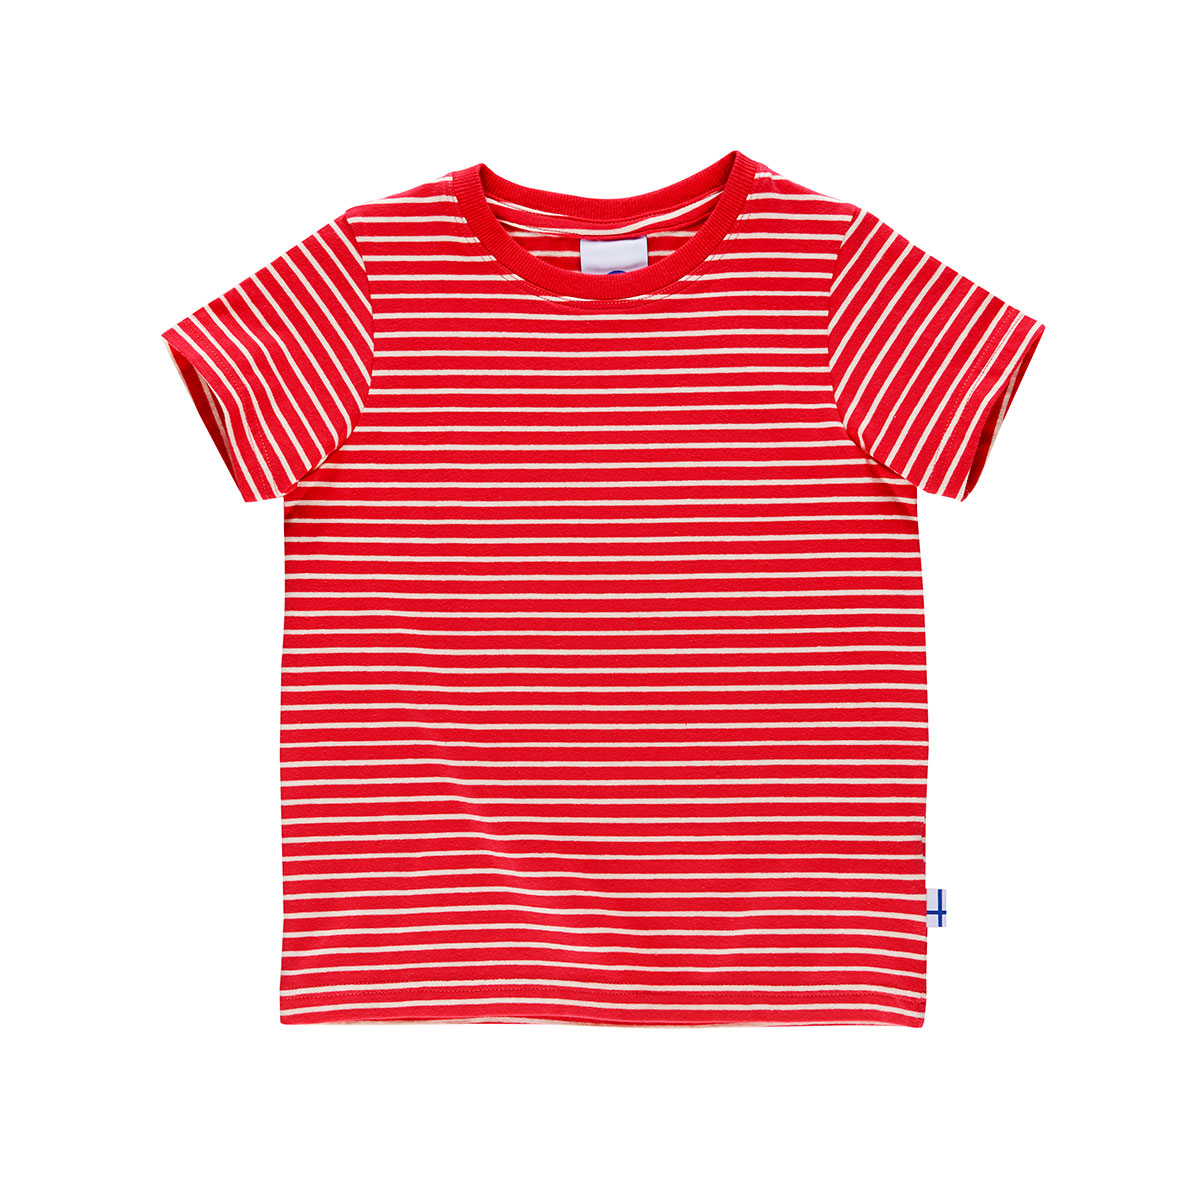 SUPI red/offwhite T-Shirt - shortsleeve  120/130 Finkid®